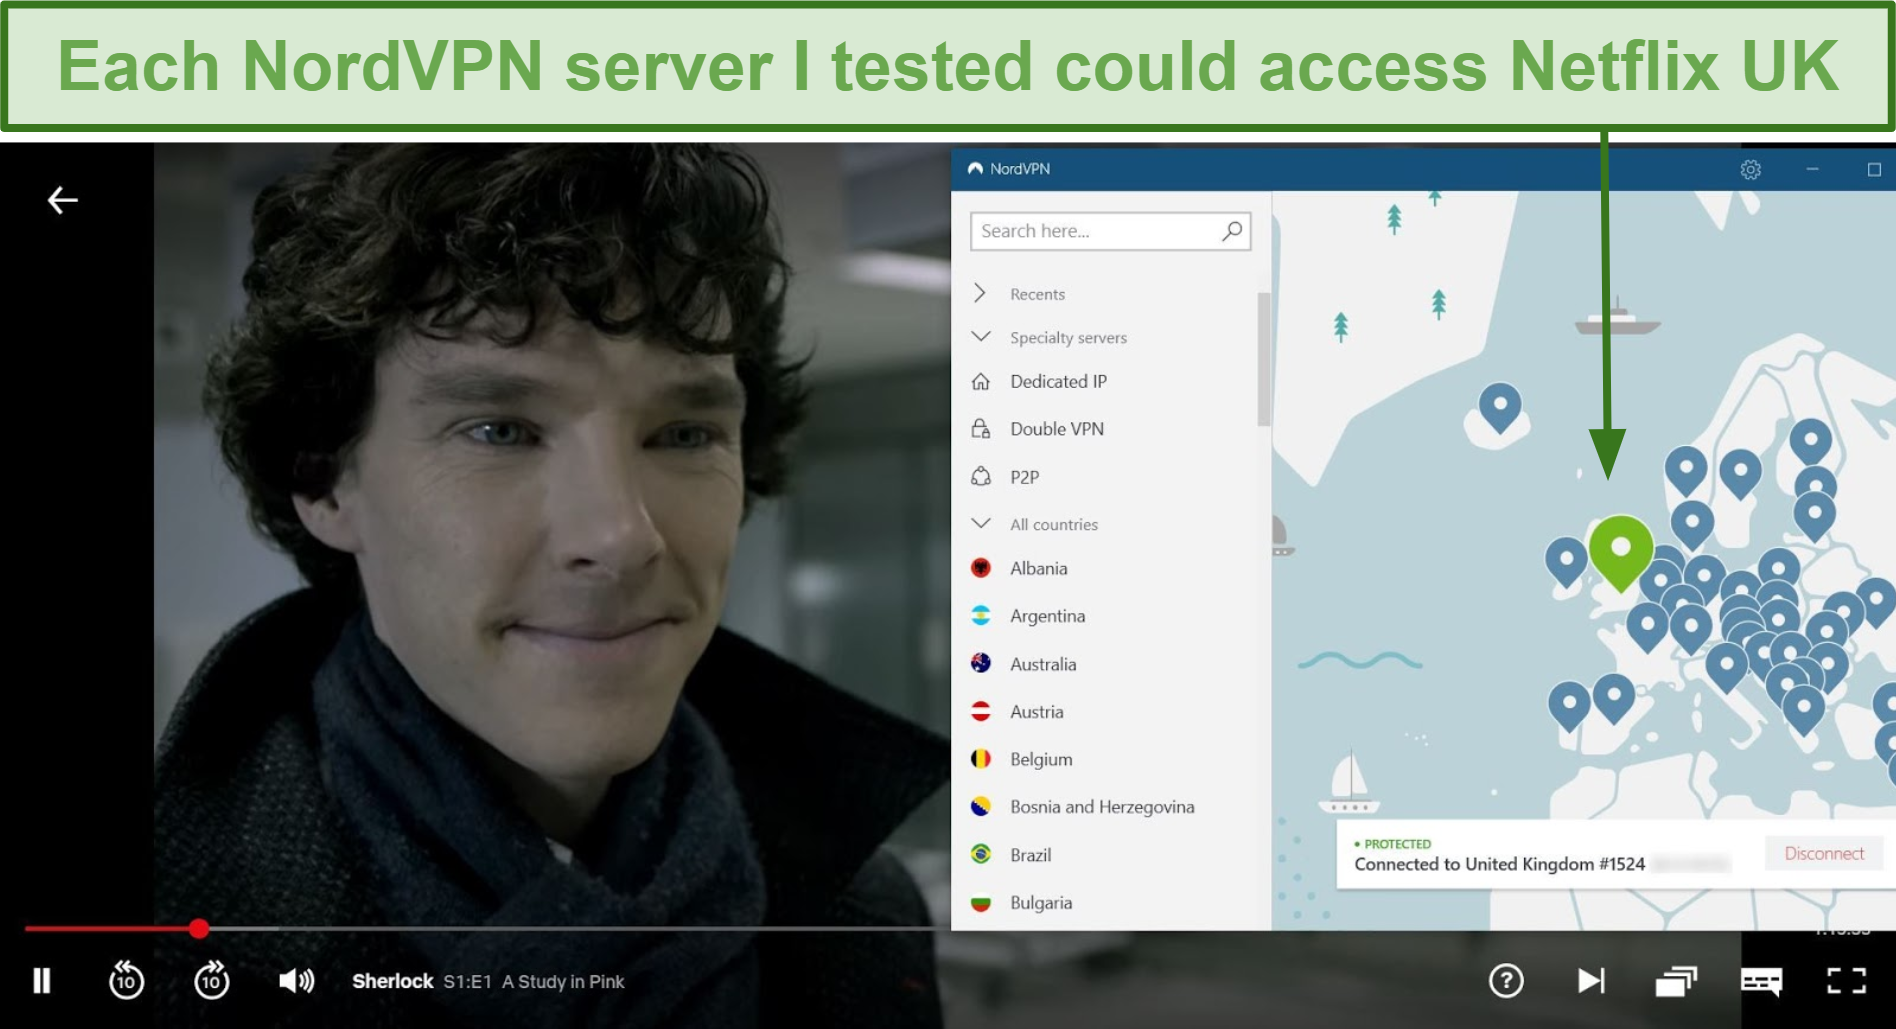 Screenshot of NordVPN unblocking Netflix UK while playing Sherlock